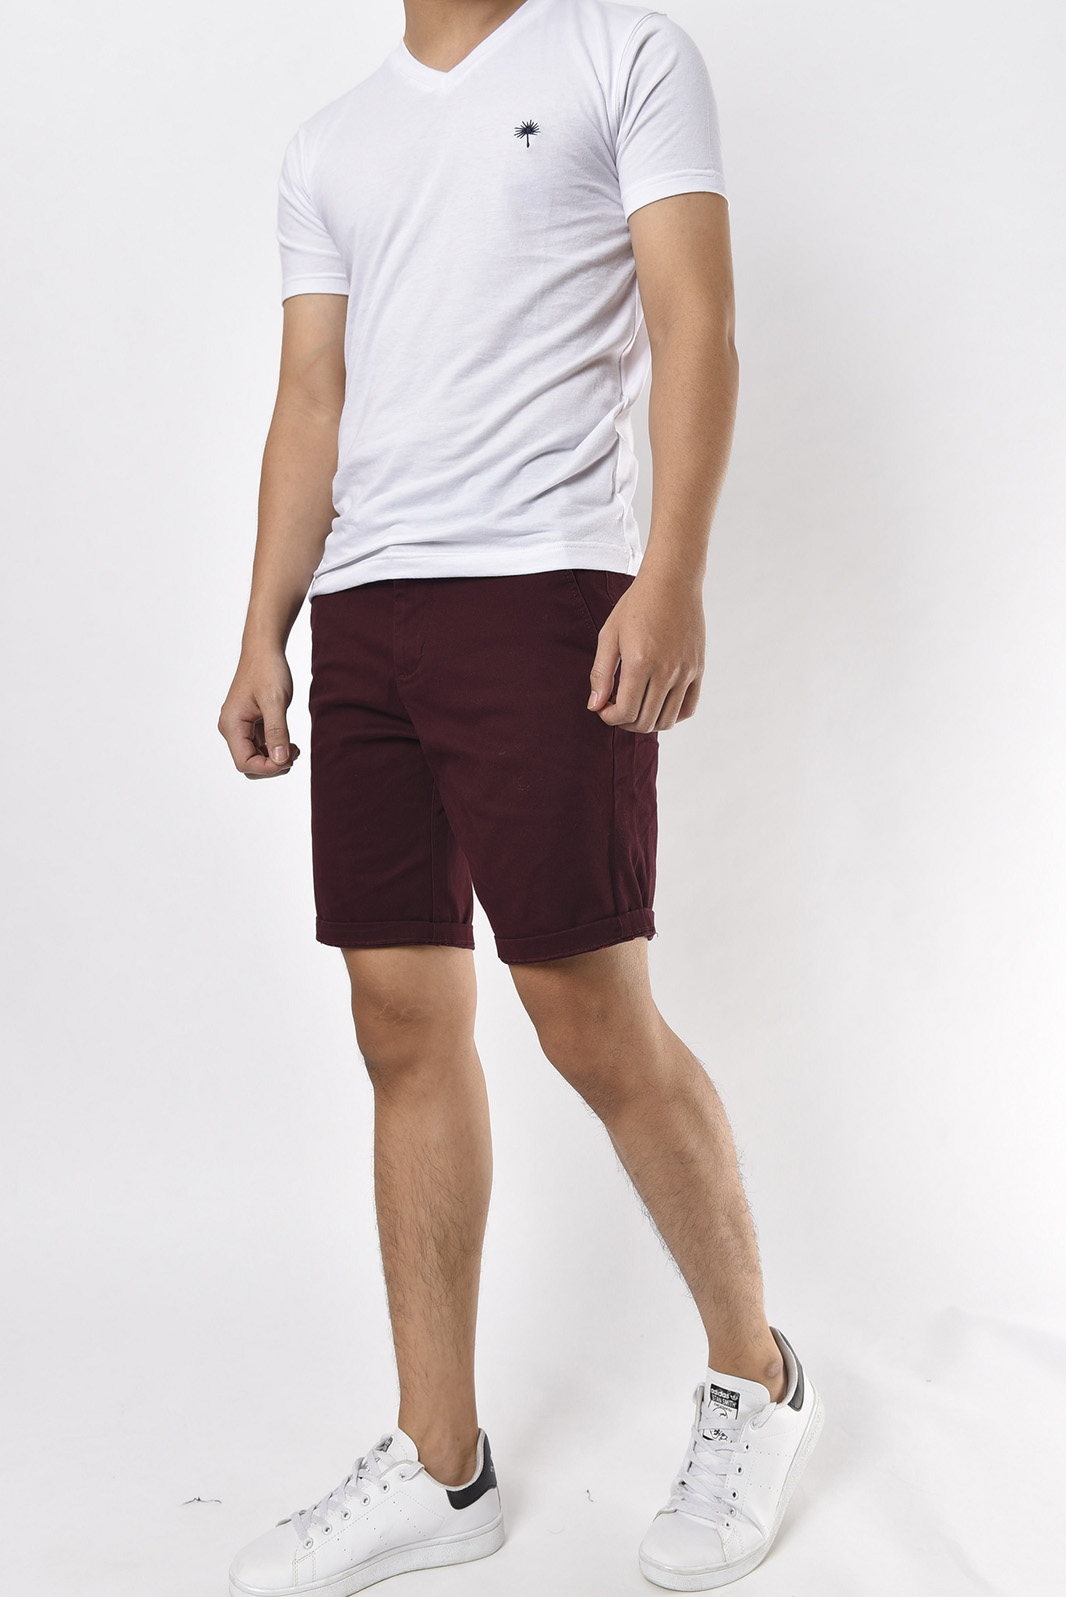 QUẦN SHORT KAKI WASHED PAZZINI